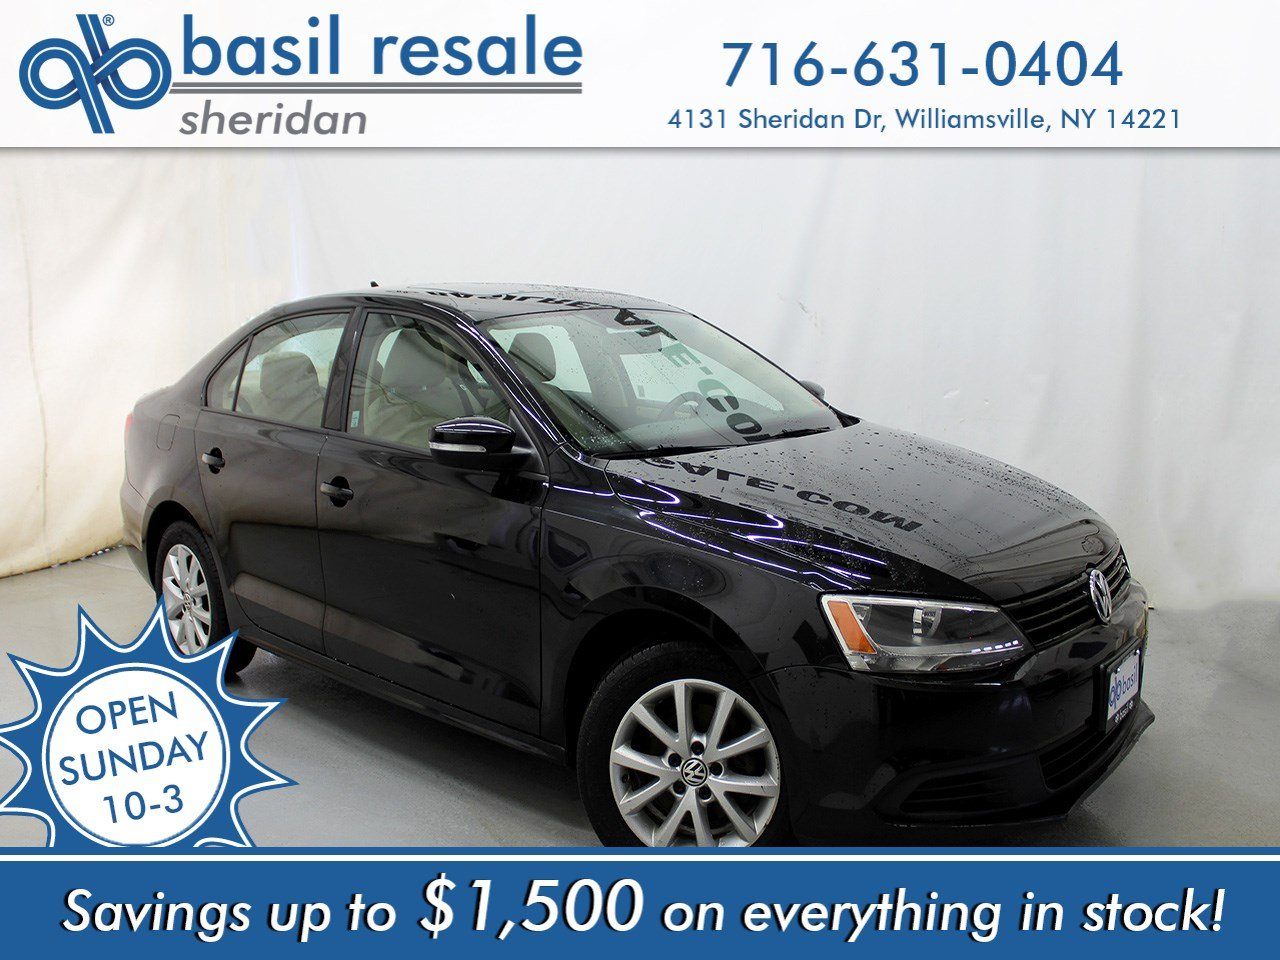 Pre-Owned 2011 Volkswagen Jetta Sedan SE w/Convenience & Sunroof PZEV